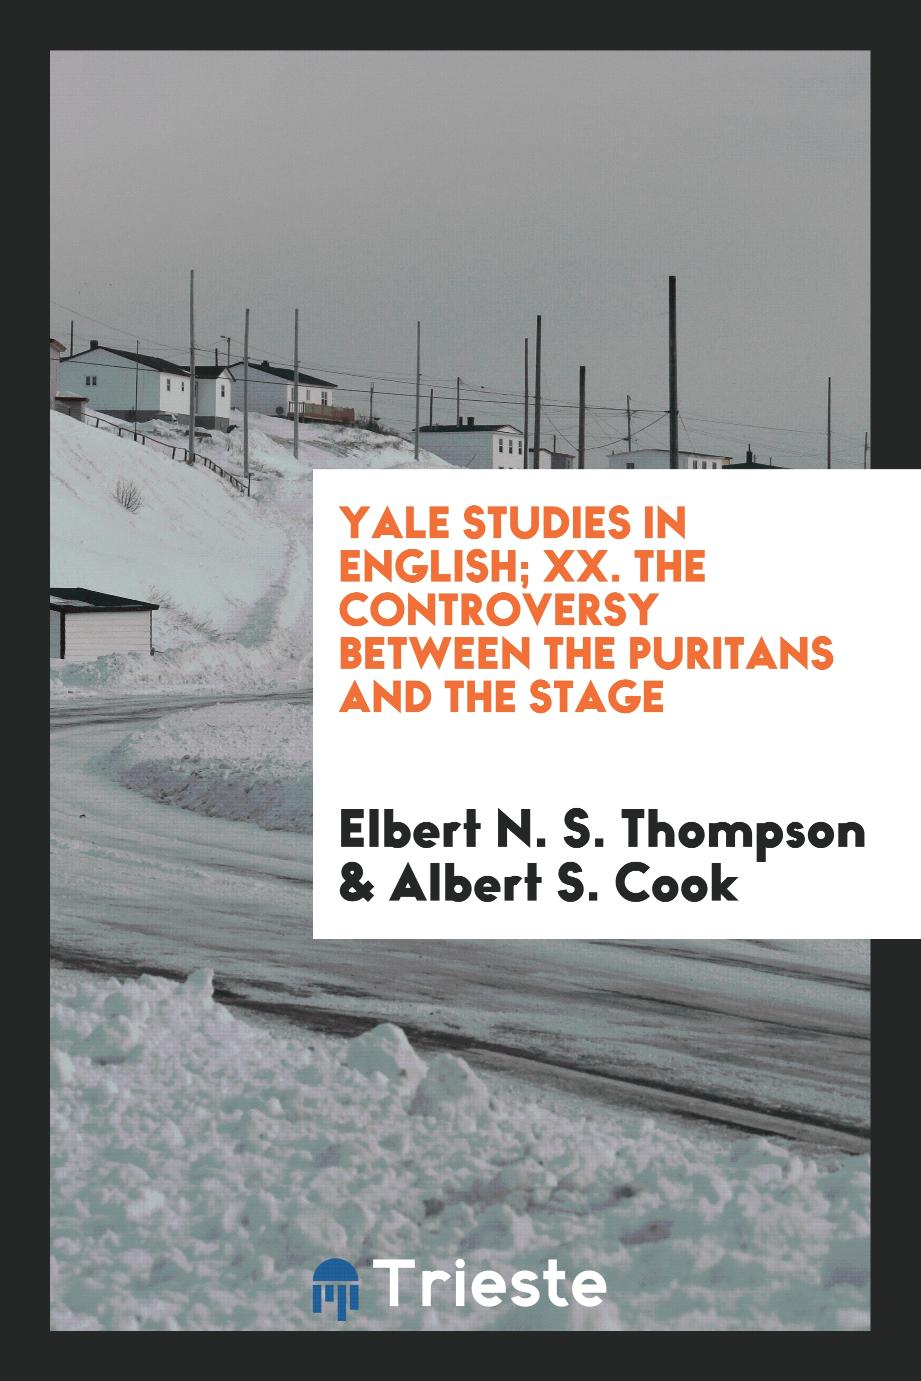 Yale Studies in English; XX. The Controversy Between the Puritans and the Stage